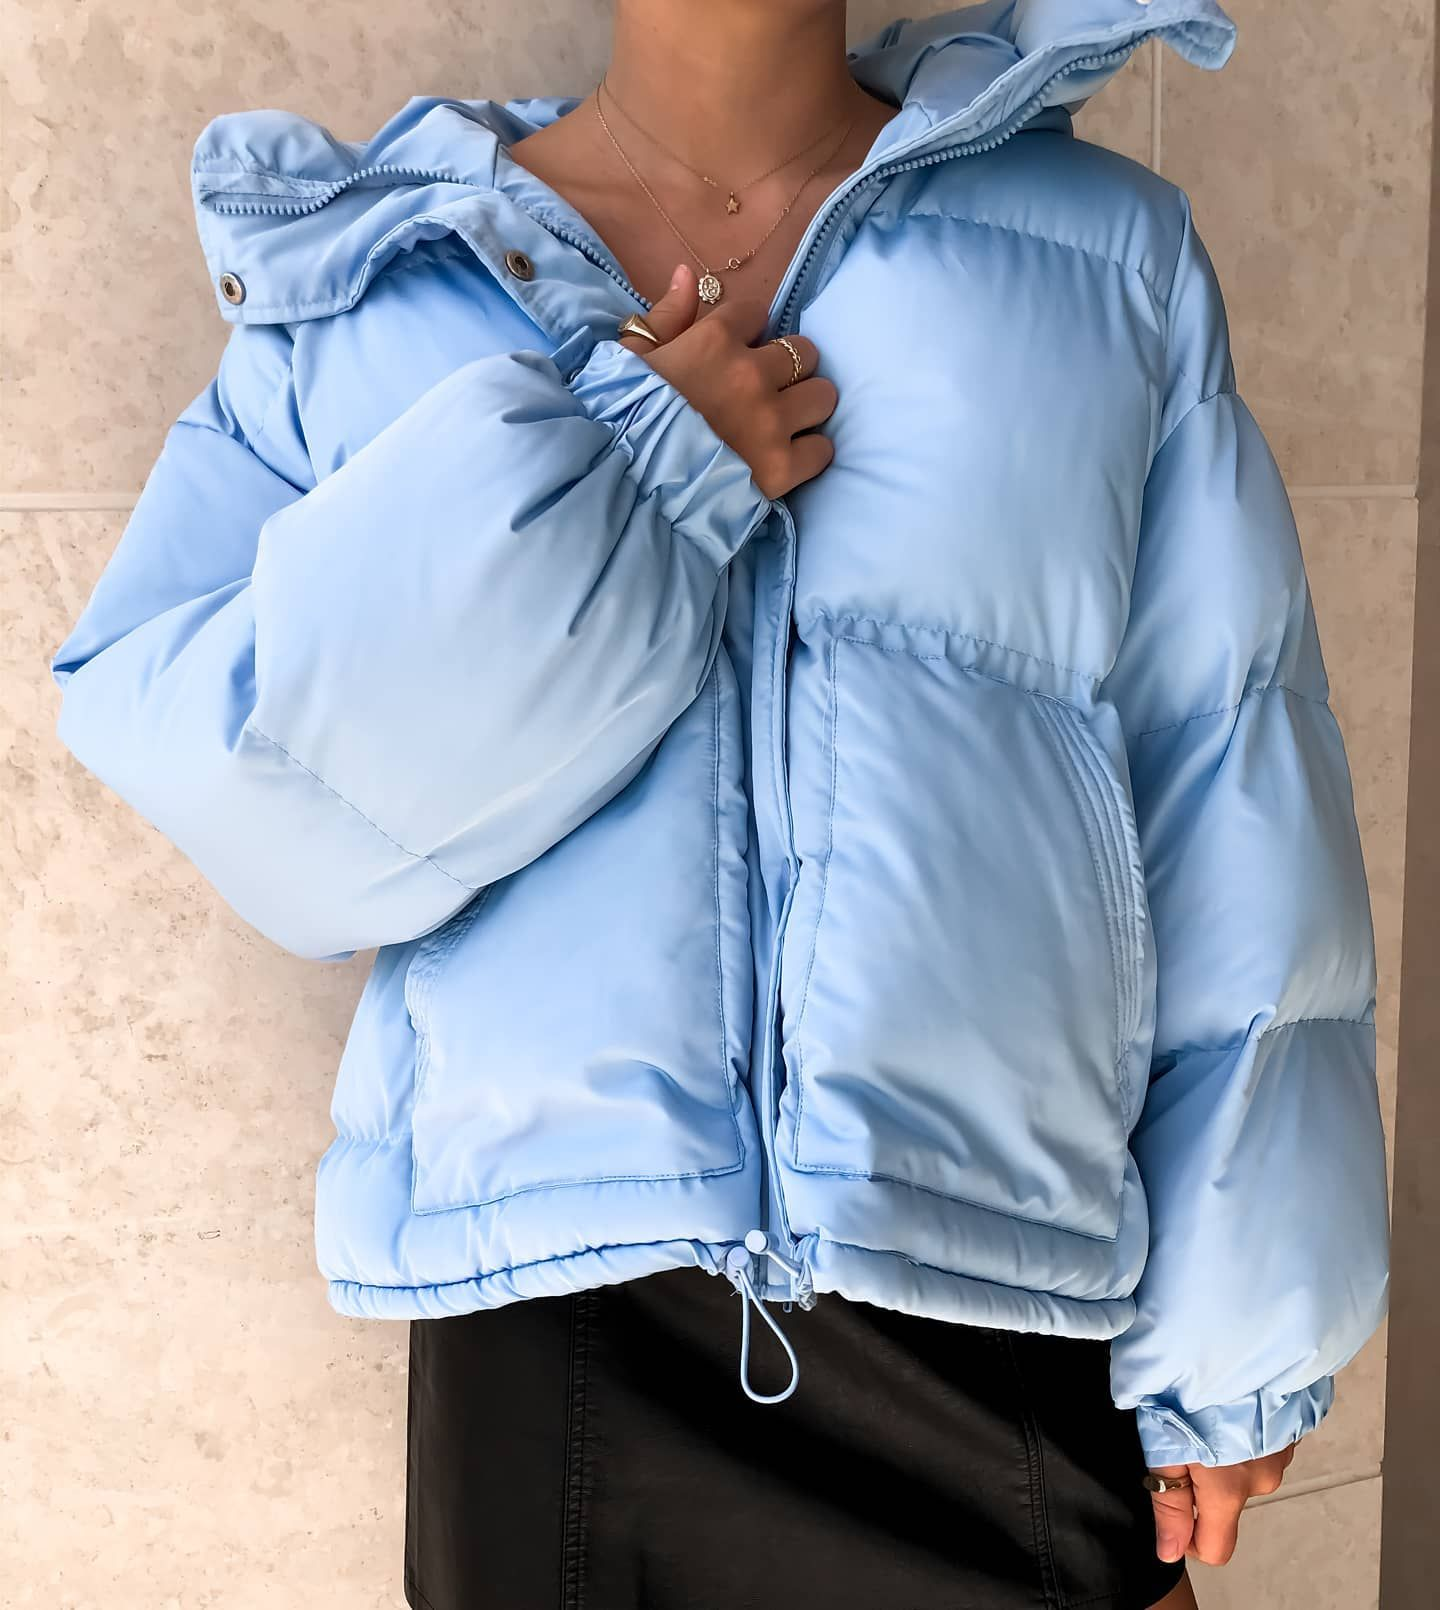 Can T Pocket It Puffer Jacket Just Restocked Jackets Outfits Clothes For Women [ 1610 x 1440 Pixel ]